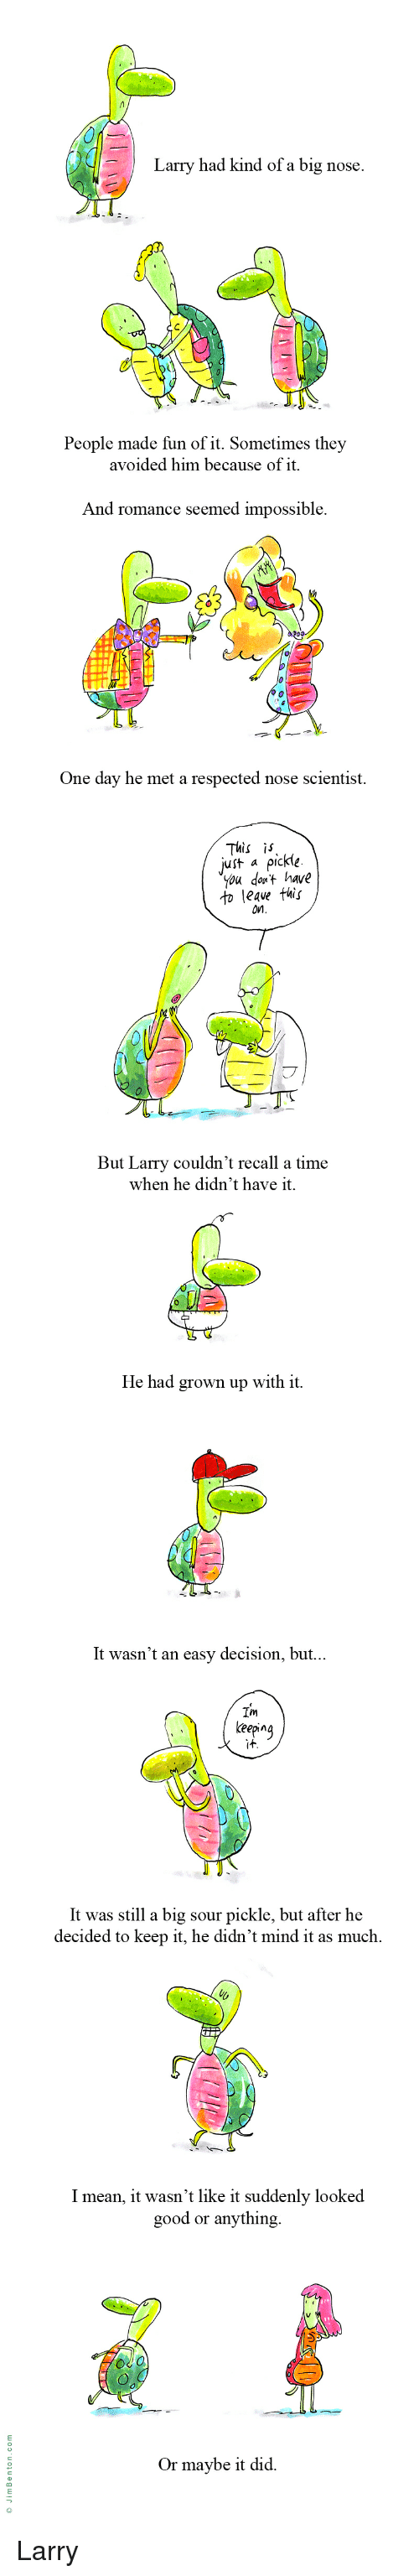 Larry Had Kind Of A Big Nose People Made Fun Of It Sometimes